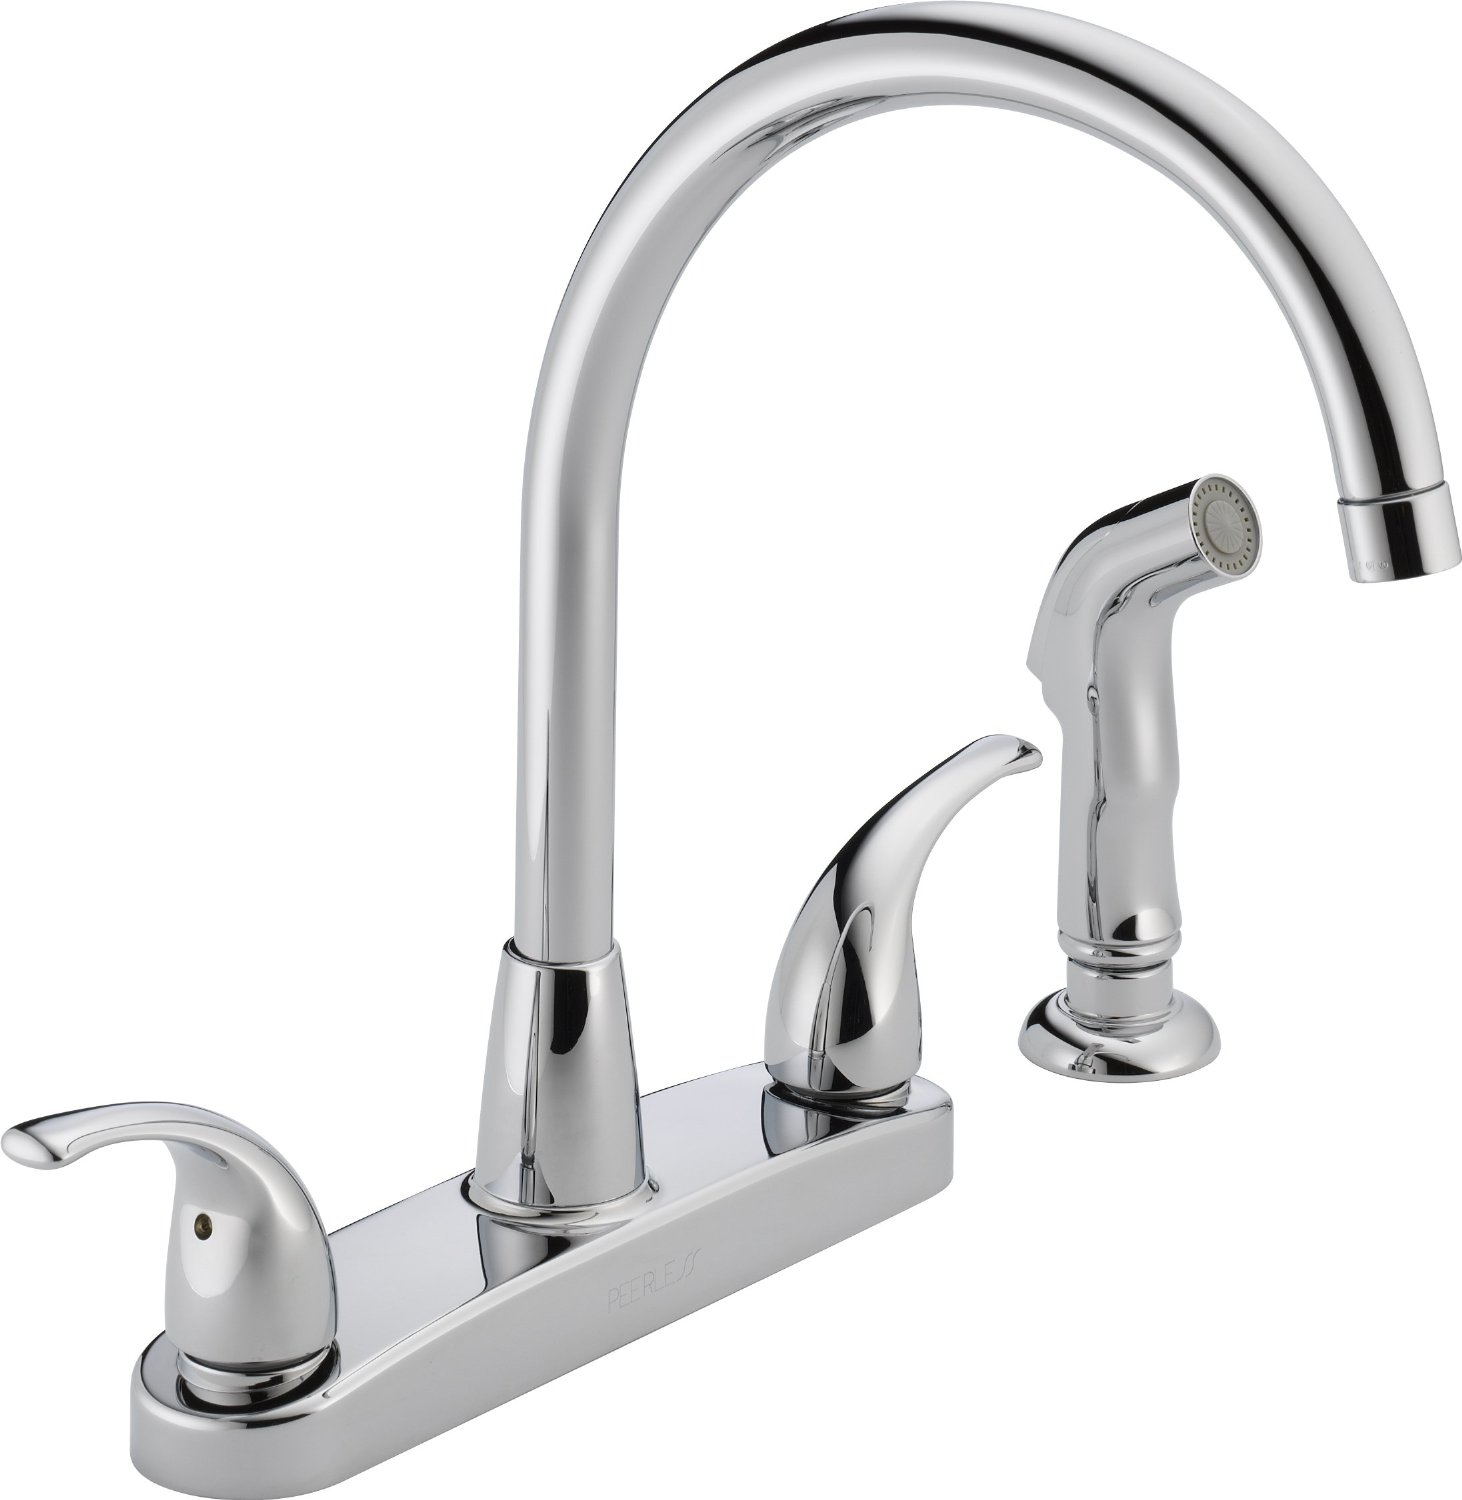 Ideas, are moen kitchen faucets good are moen kitchen faucets good 28 good kitchen faucets kitchen sinks and faucets best 1462 x 1500  .